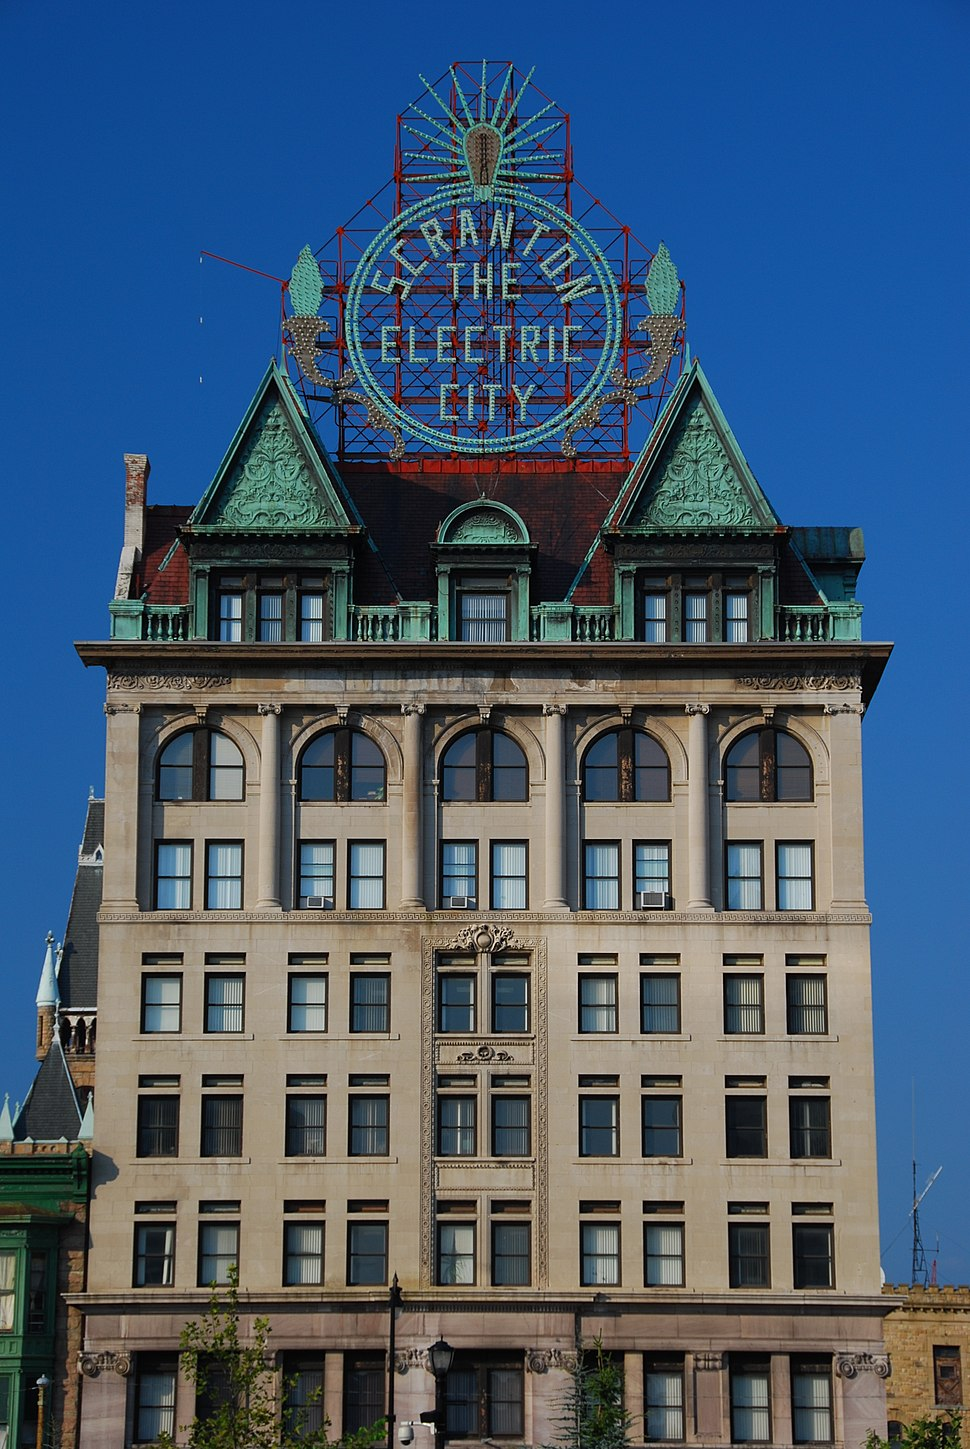 Scranton Electric Building